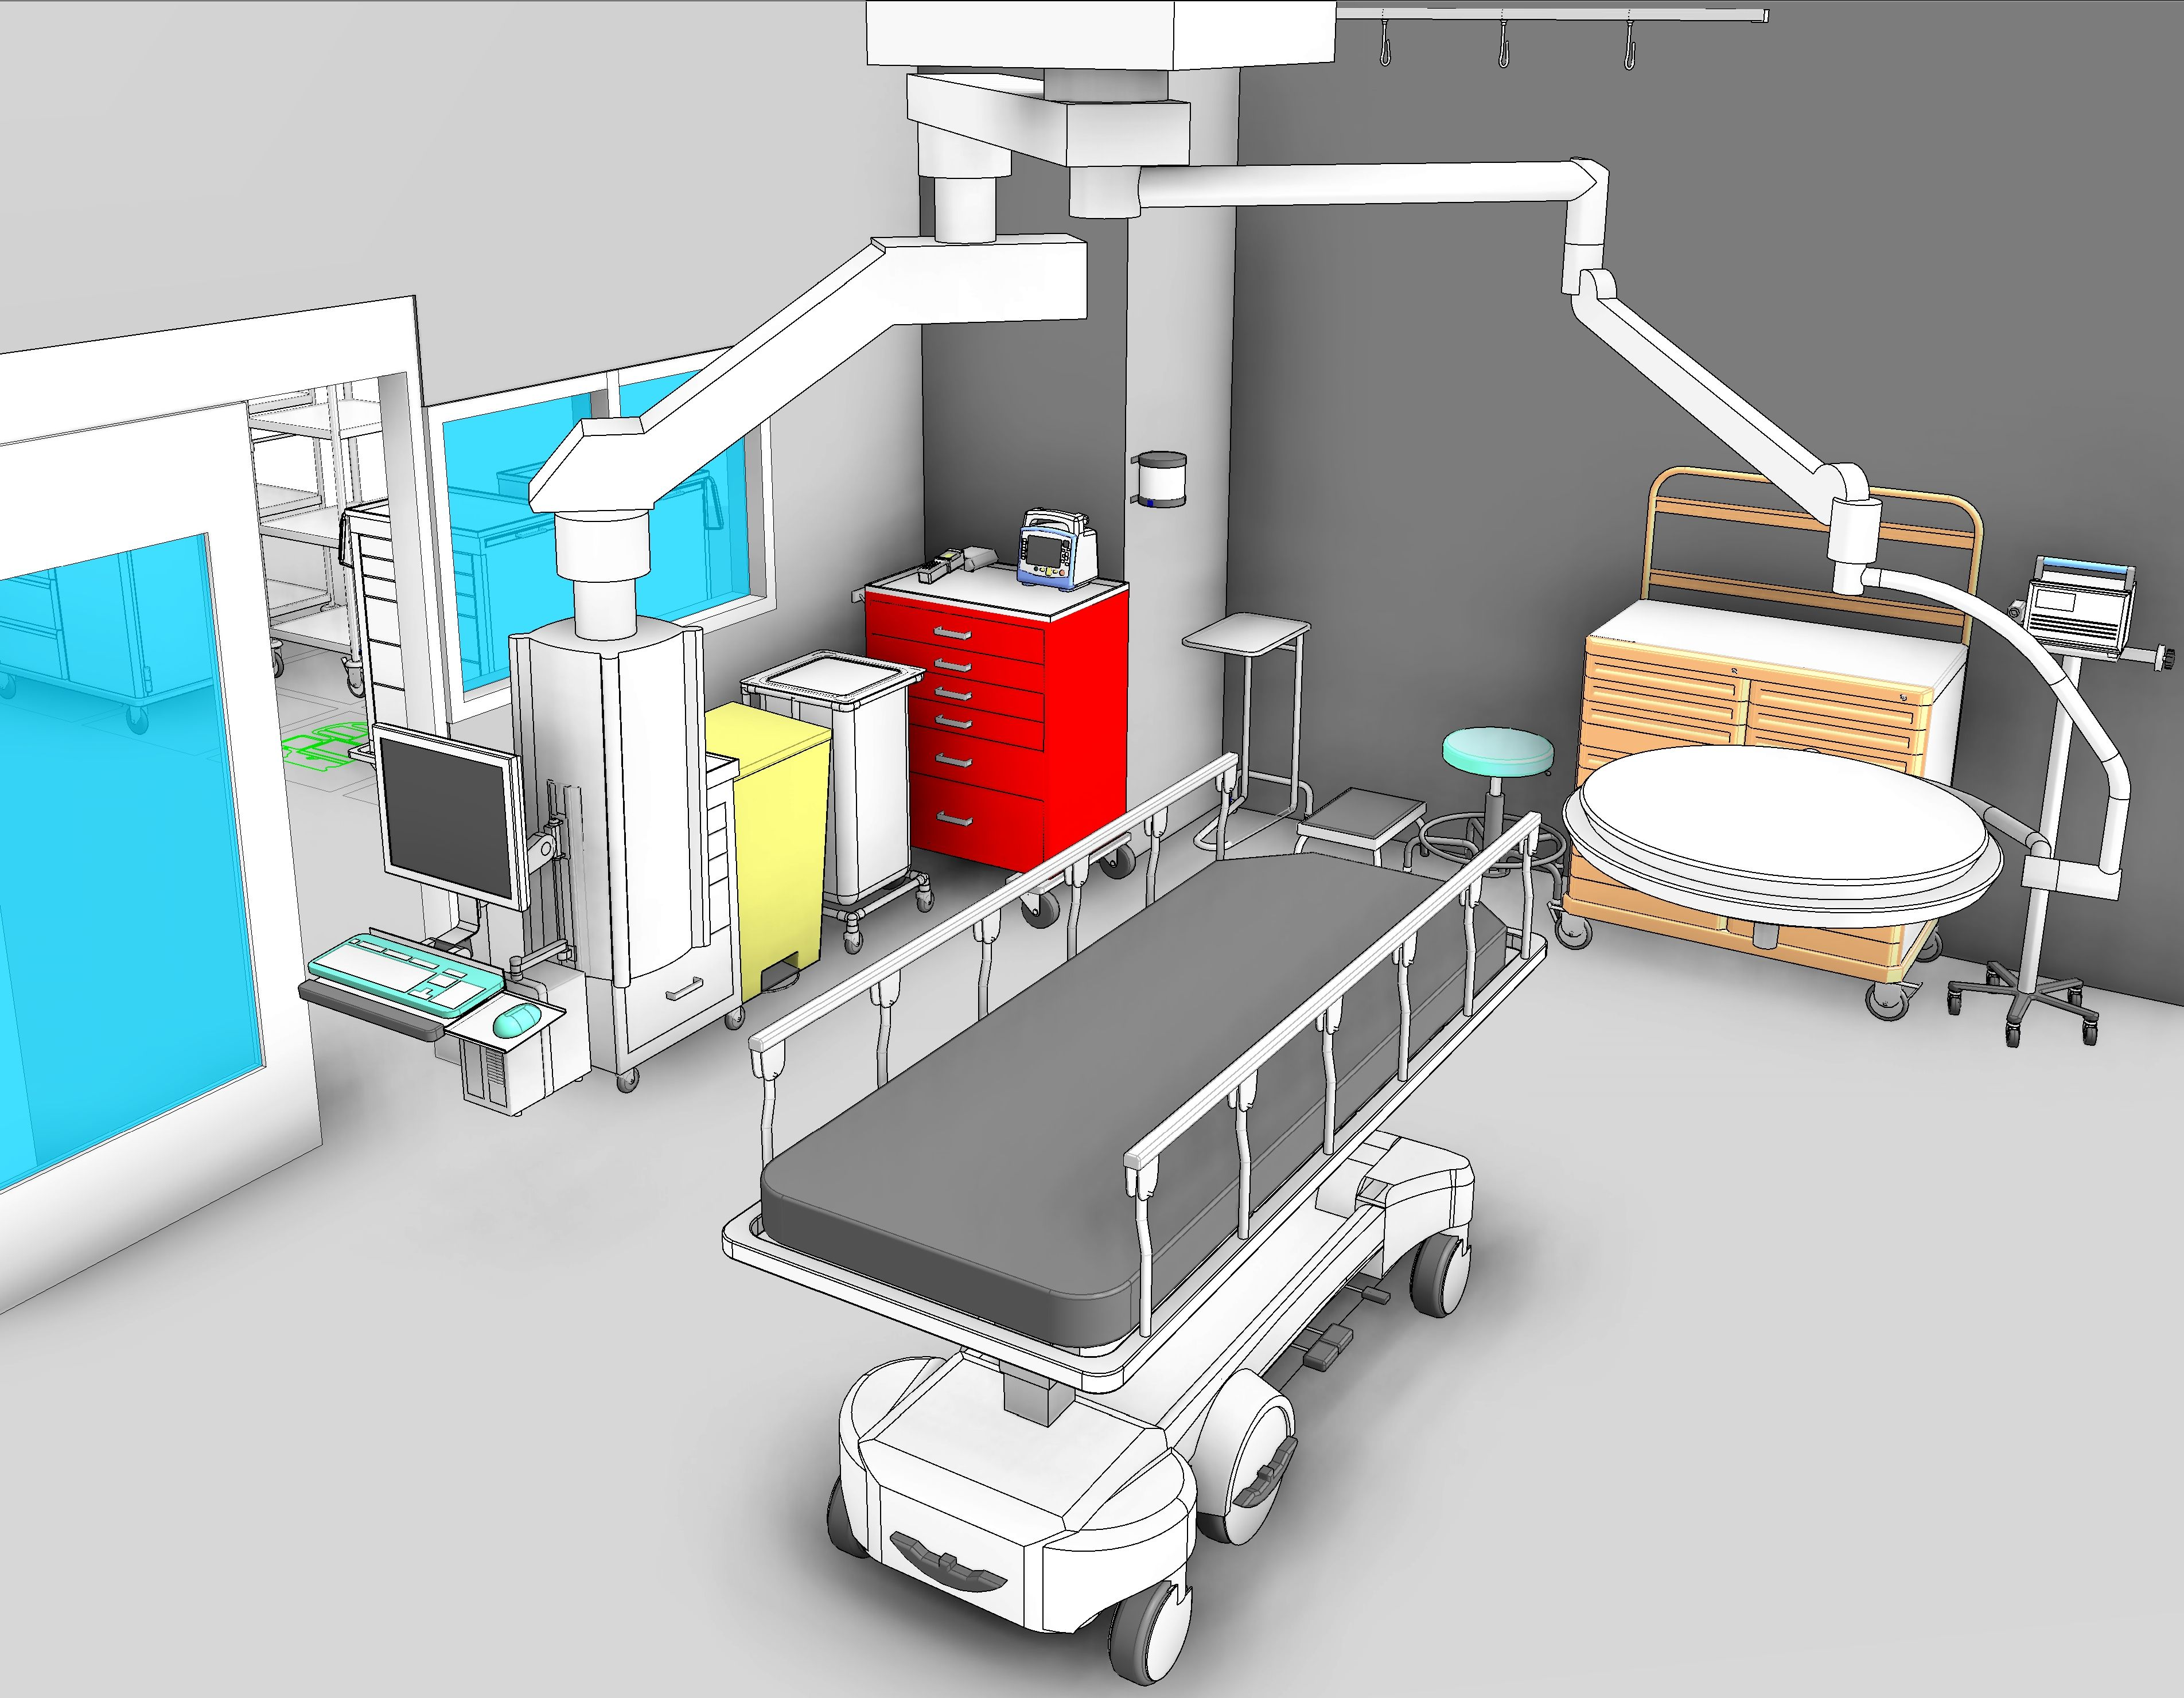 An Emergency Center Trauma Room. 3D Revit medical equipment families created and placed by Korbel  sc 1 st  Pinterest & An Emergency Center Trauma Room. 3D Revit medical equipment families ...